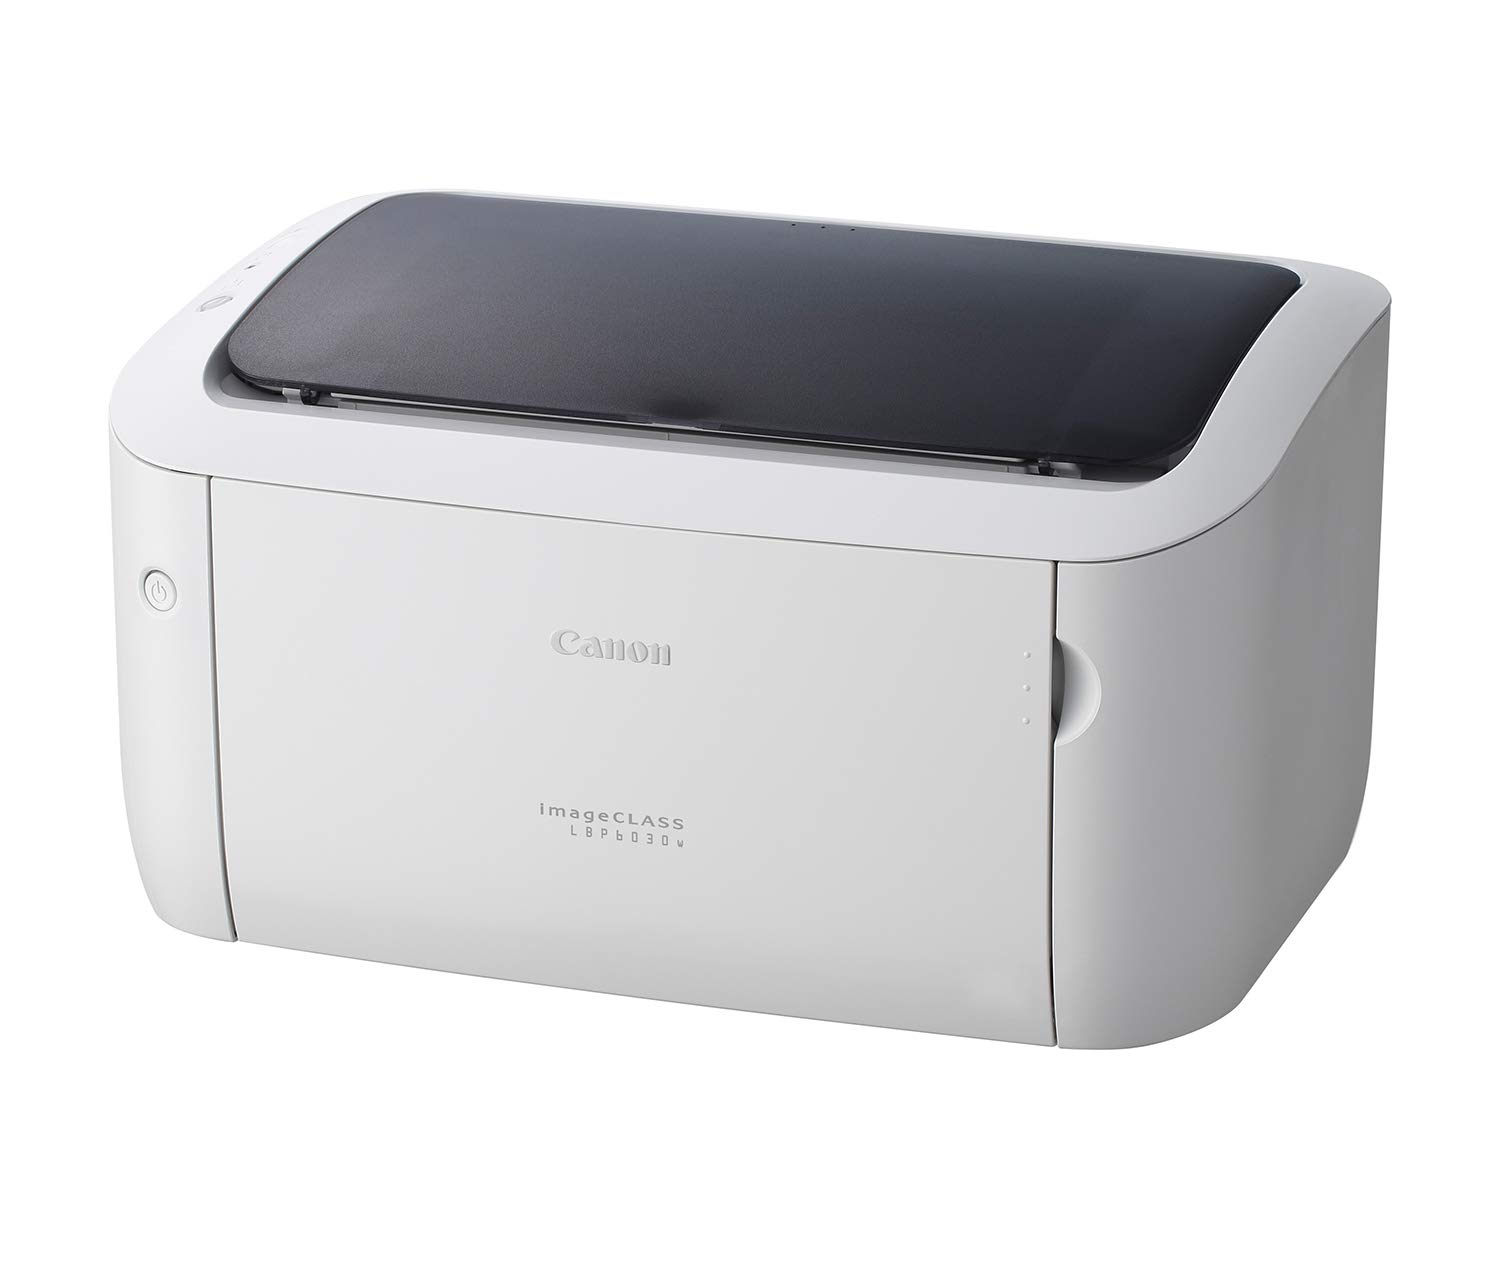 This Canon laser printer is a cost-effective choice for home offices advise